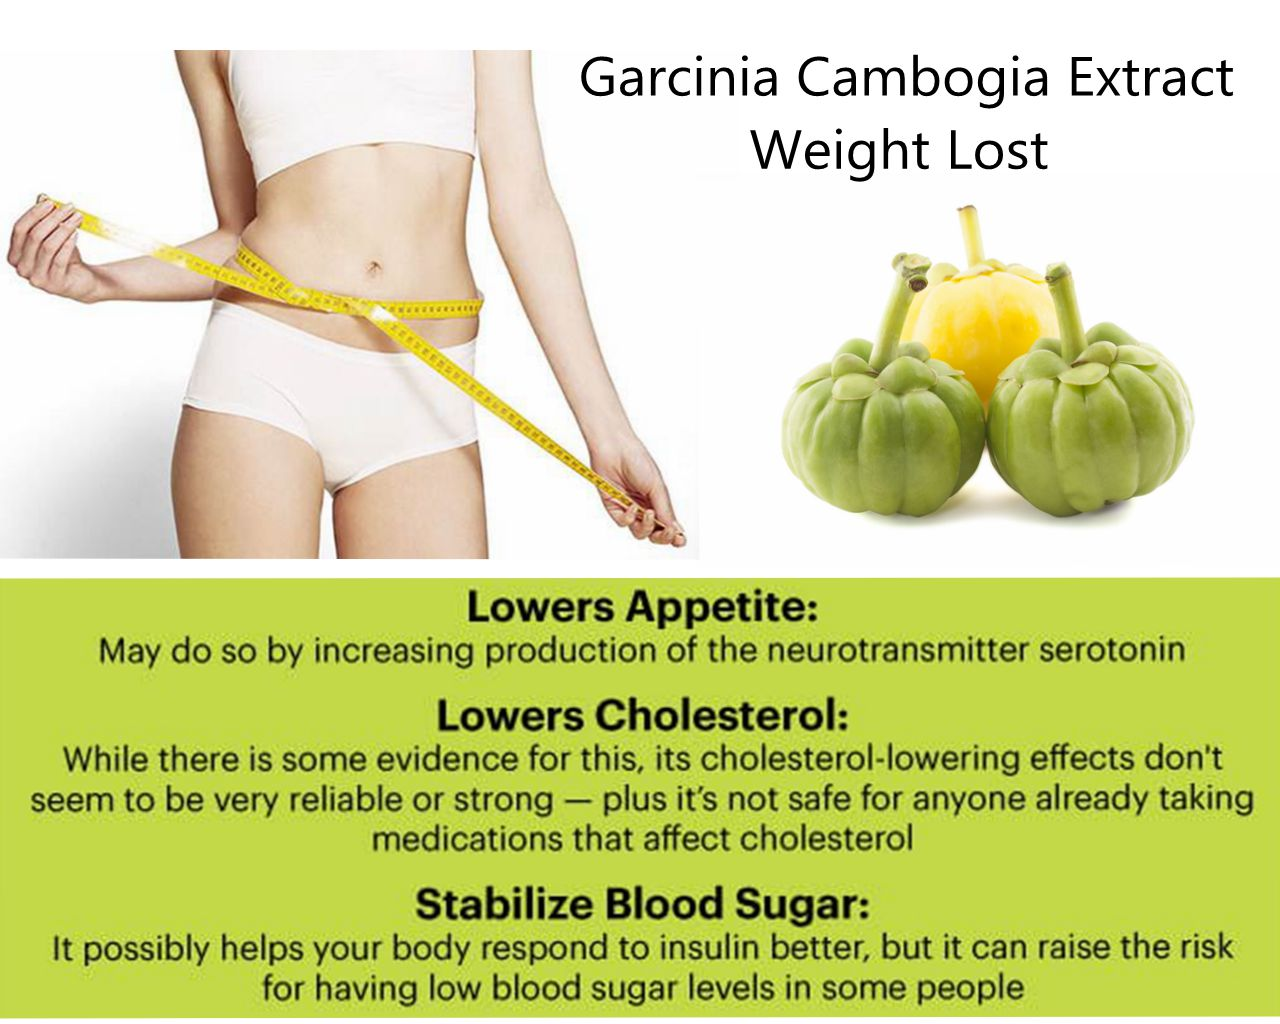 Garcinia Cambogia: Is a good herbal extract for weight lost